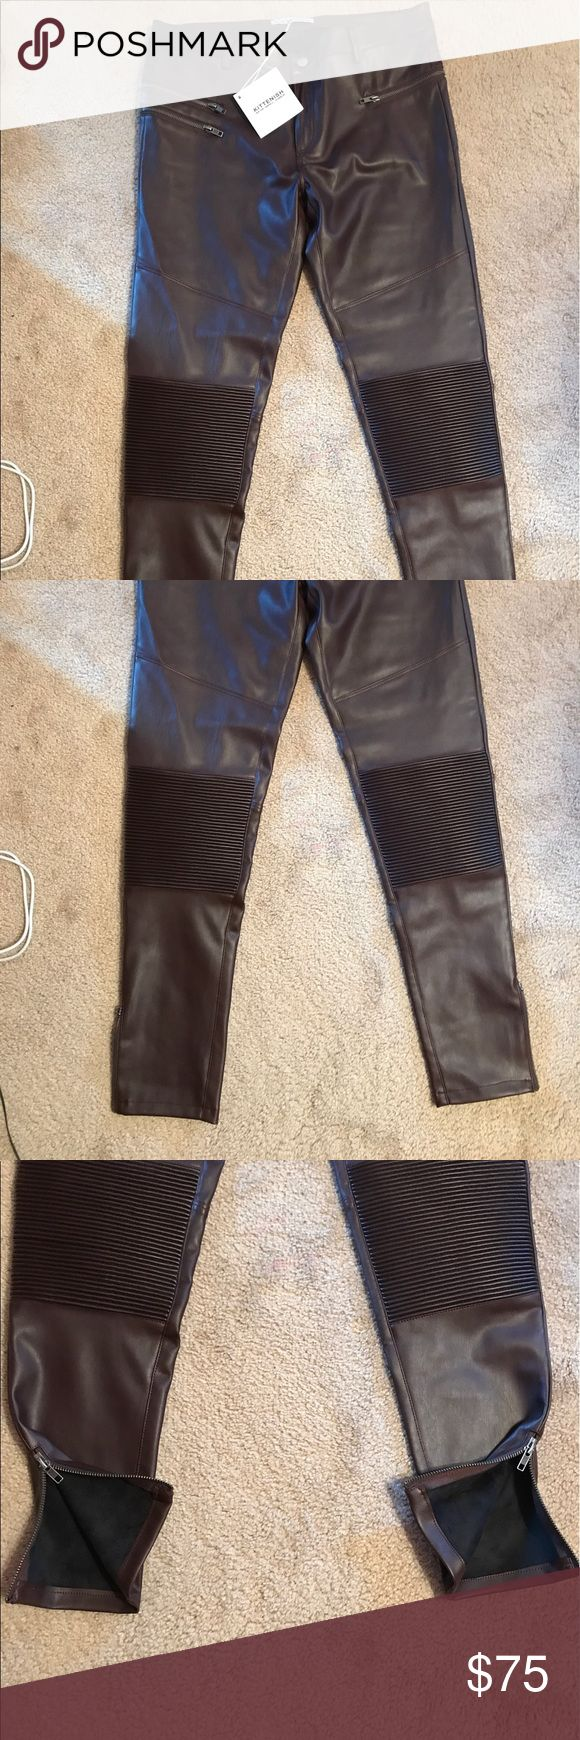 Kittenish leggings. Faux leather  Oxblood leggings. Size large. Zipper detail on both ankles. They do have decent stretch! kittenish Pants Leggings